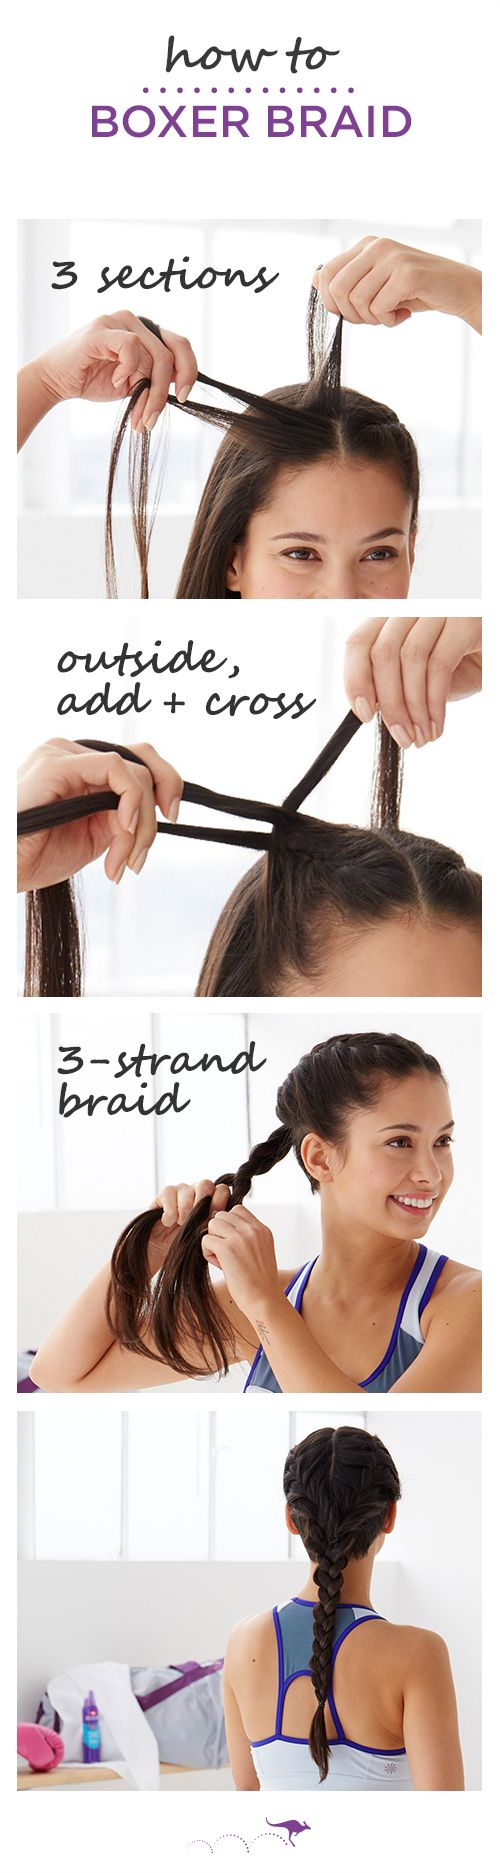 How To: Boxer Braid | The perfect hairstyle for running, boxing, or spin class. For smoother, stronger strands use Instant Freeze Mousse before you braid |  1. Part hair & section into three small strands  •  2. Take the left strand, add a small amount of hair & cross over to the other strand, repeat, alternating sides until just above your ear & tie  •  3. Repeat on the other side of you part, then tie into a low pony & create a three-strand braid.